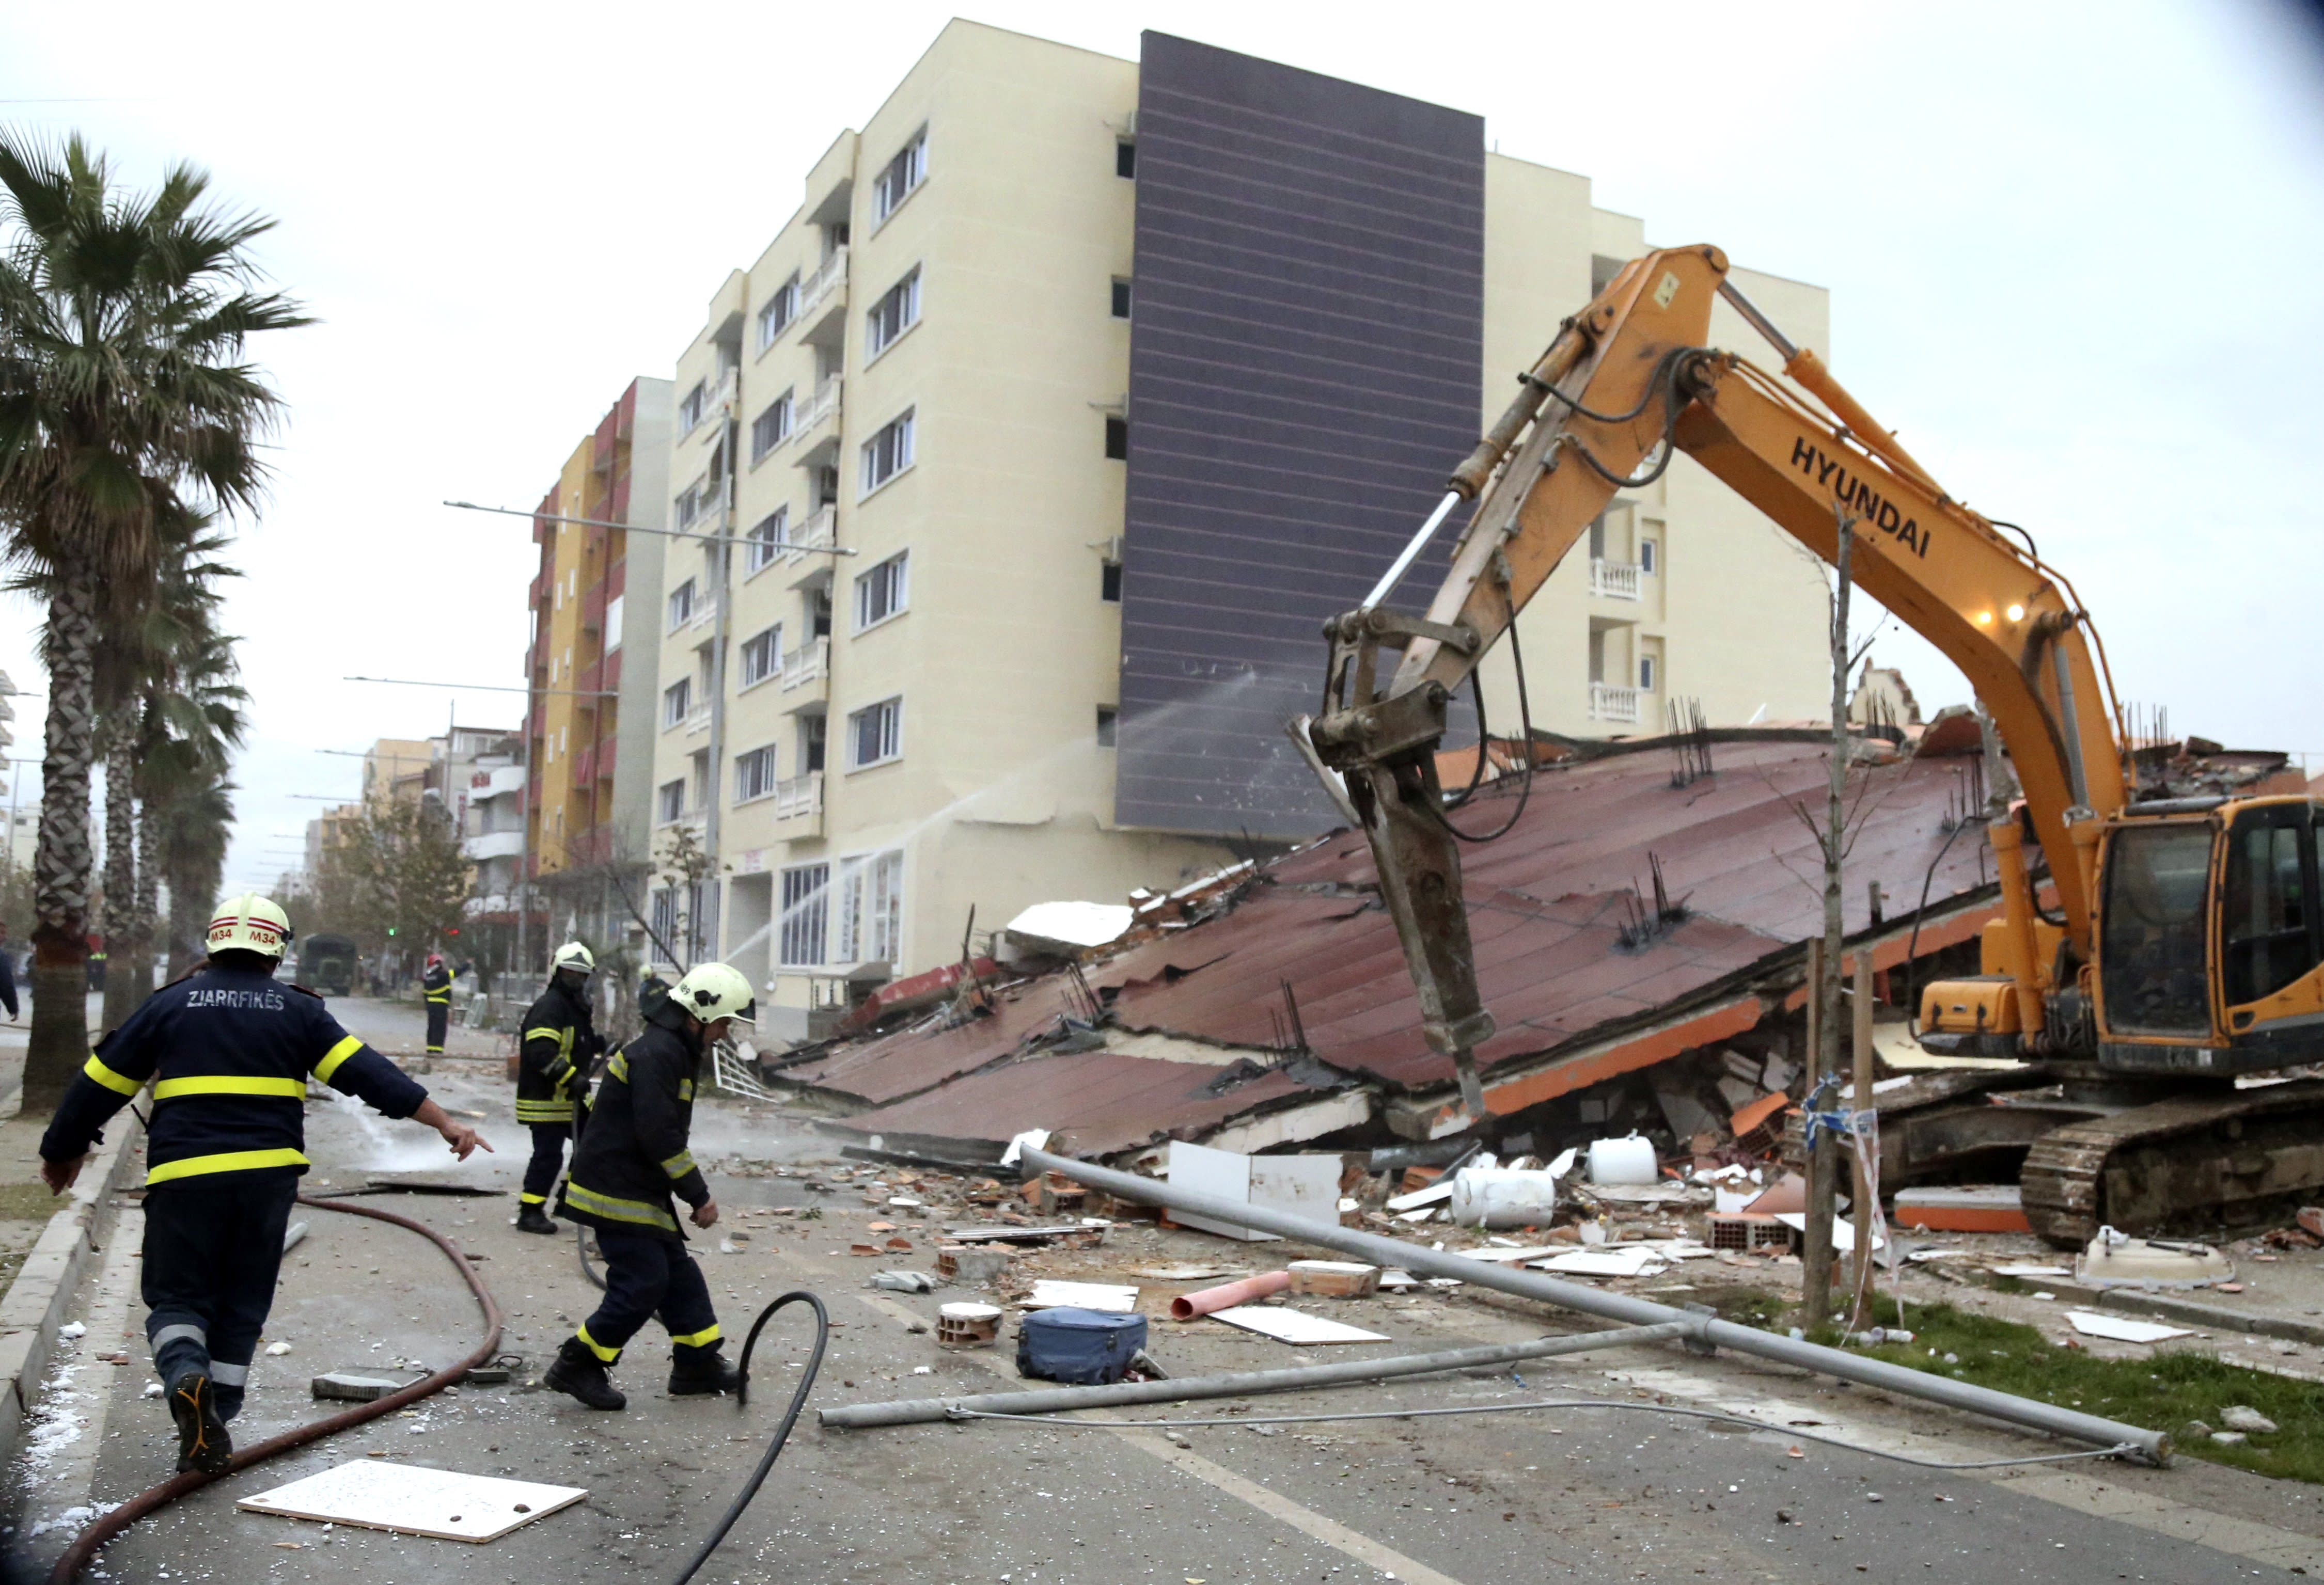 Firefighters clean the road from debris after a remote-controlled explosion to demolish a building in the western port city of Durres, Albania, Tuesday, Dec. 3, 2019. A remote-controlled explosion has demolished the six-storied building considered threatening after being damaged from the 6.4 magnitude earthquake in Albania. A quake a week ago killed 51 persons, injured more than 3,000 people, and damaged more than 11,000 buildings. (AP Photo/Hektor Pustina)